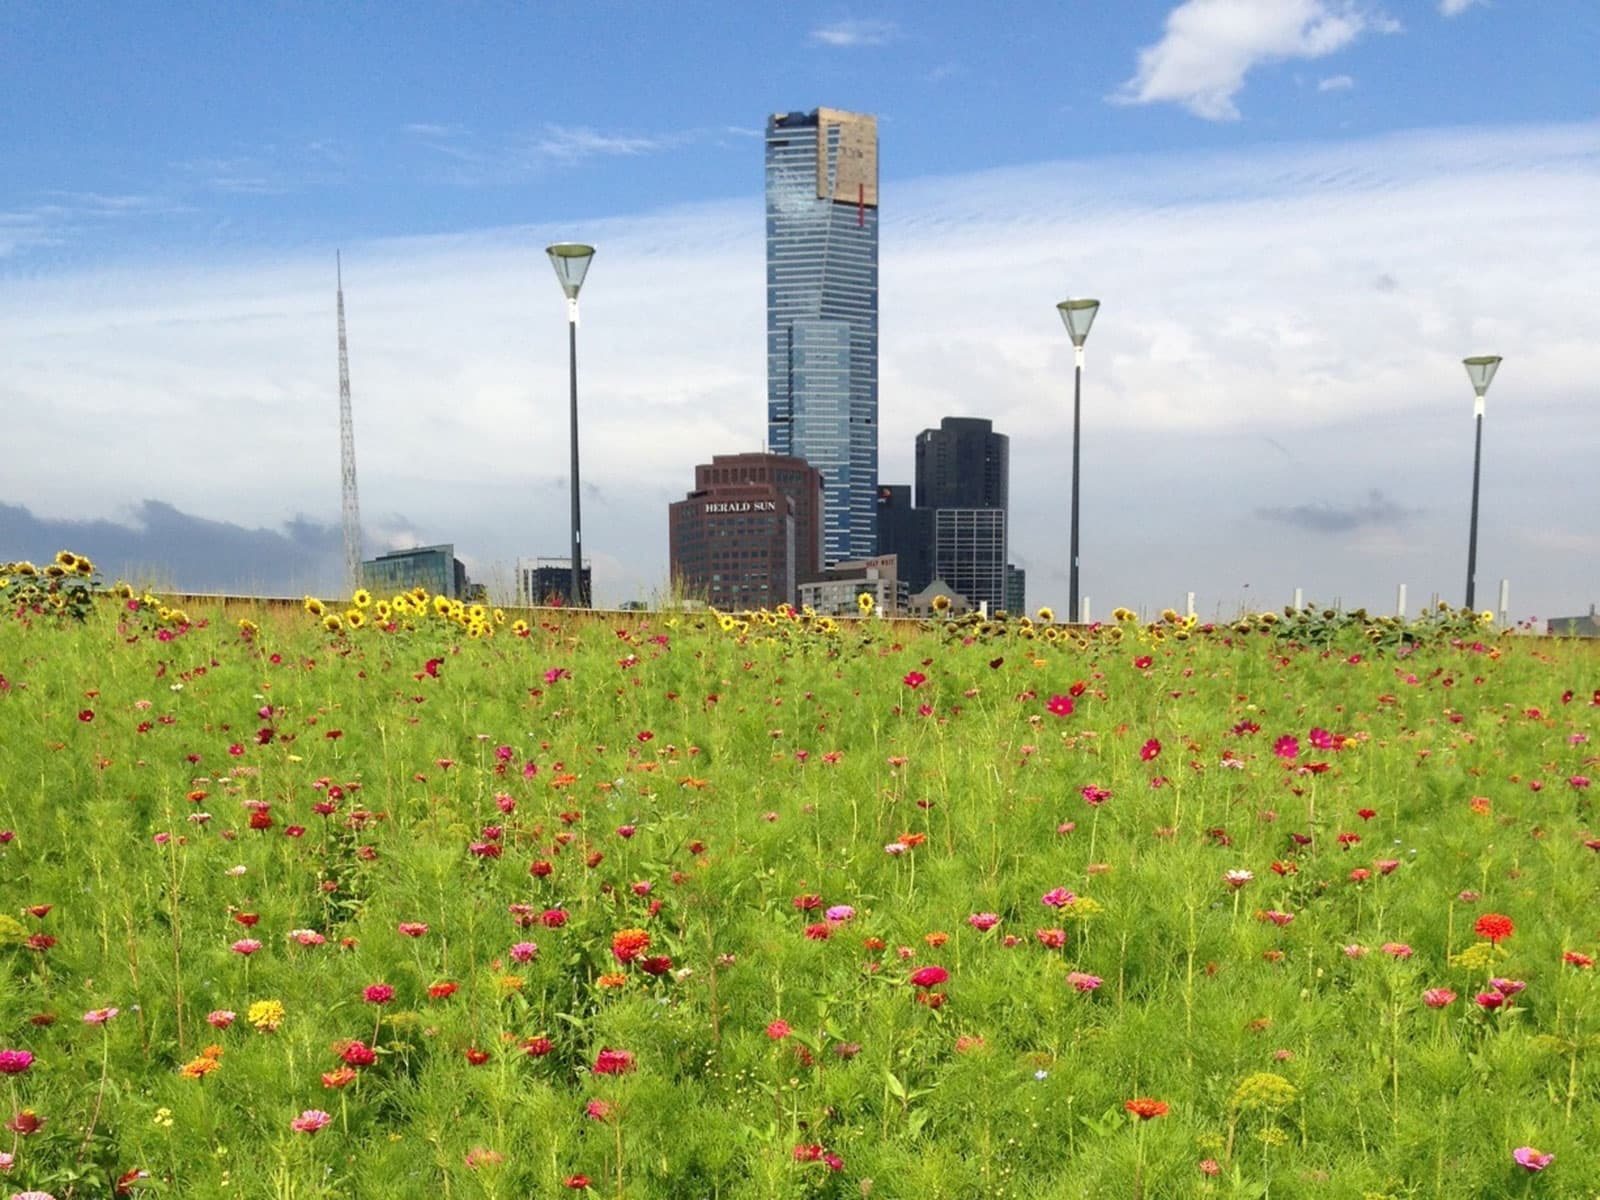 GI Assessment Tool Green Roof Image via City of Melbourne